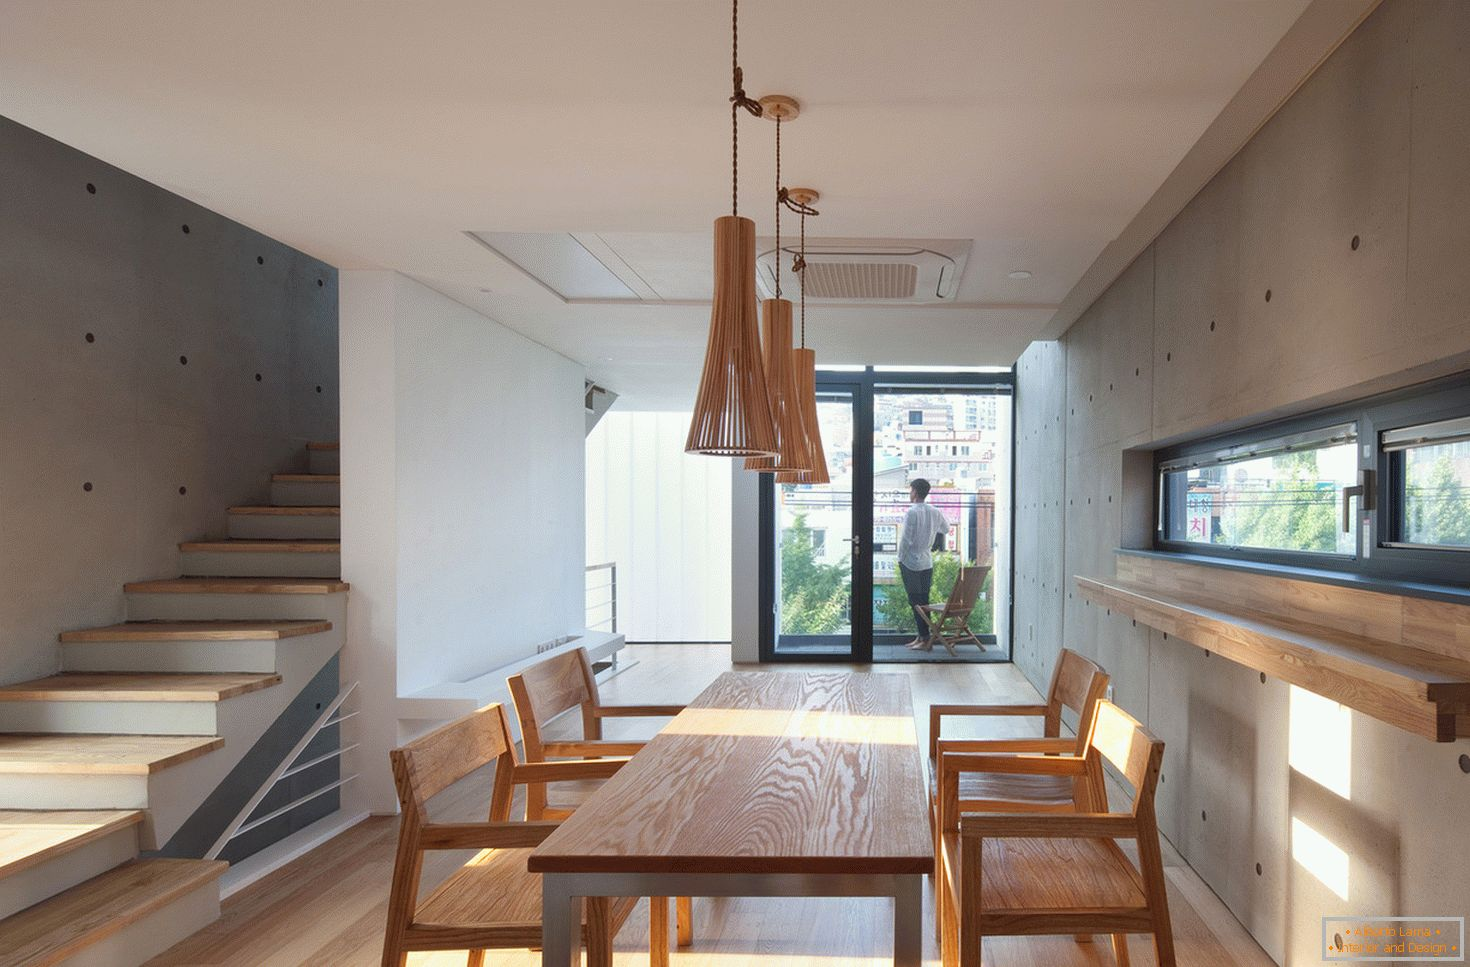 Architecture in a small square: the interior of the dining room